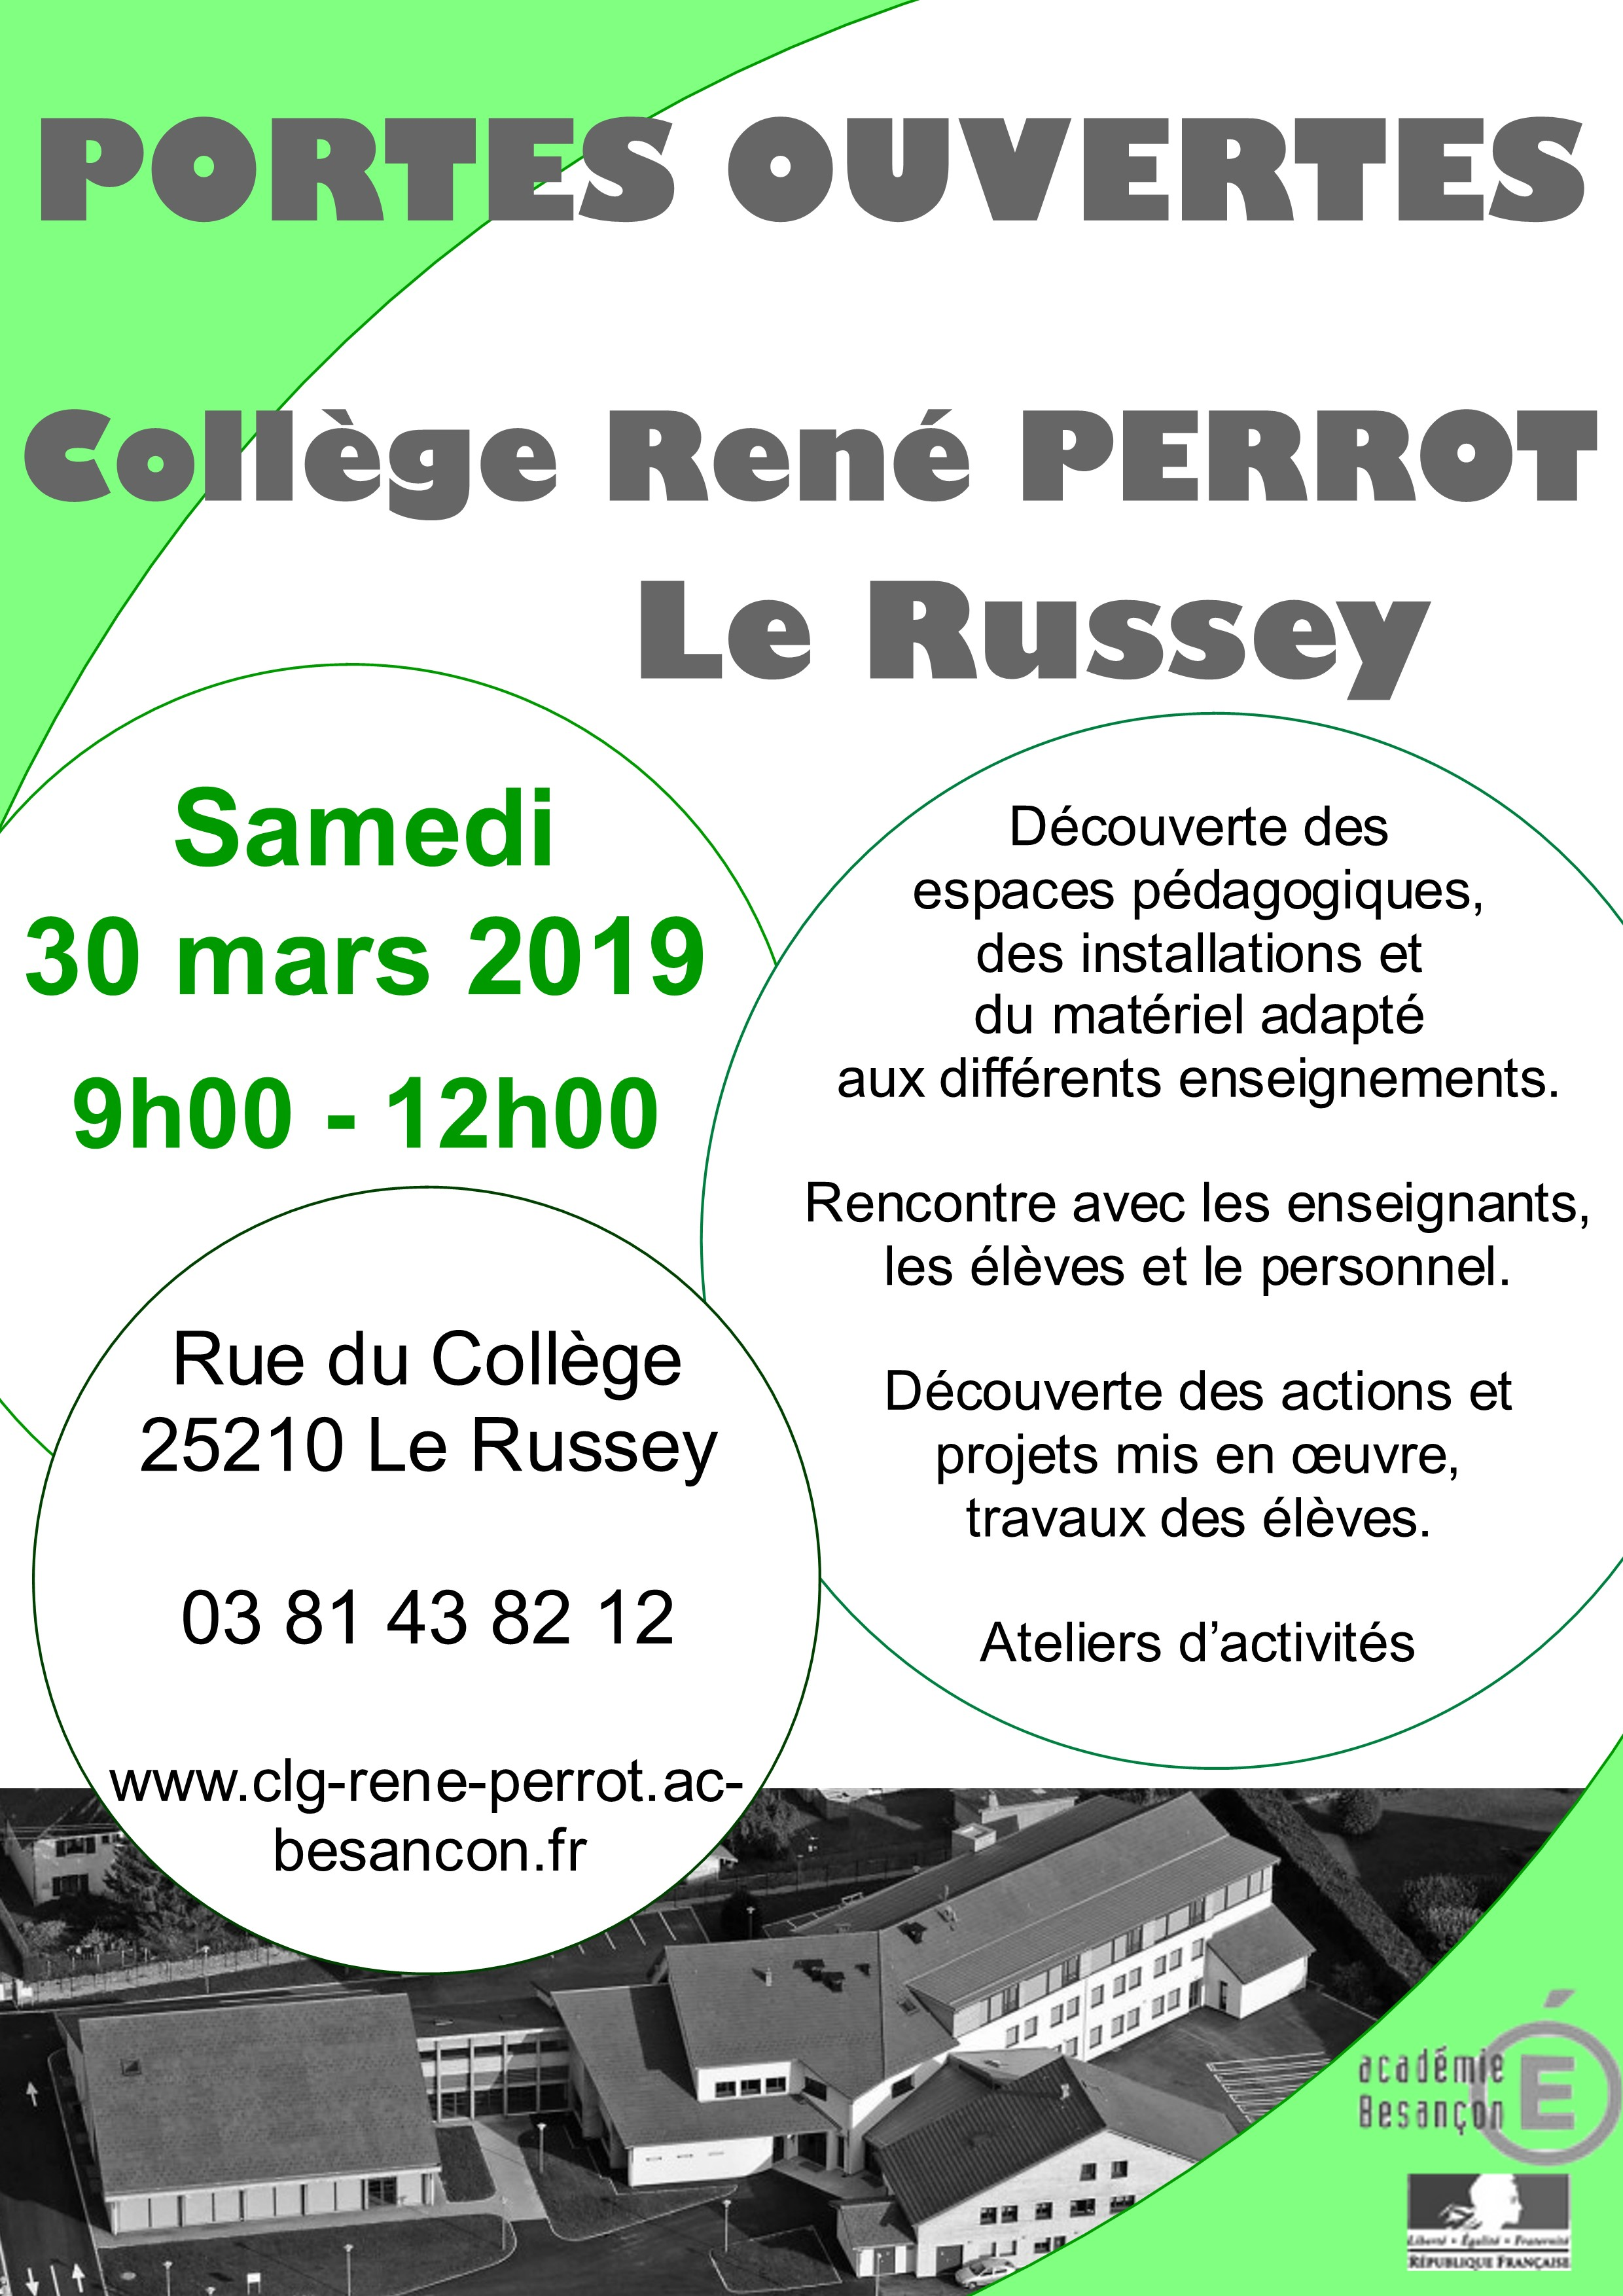 http://www.clg-rene-perrot.ac-besancon.fr/wp-content/uploads/sites/16/2019/02/affiche-PO-2019.jpg